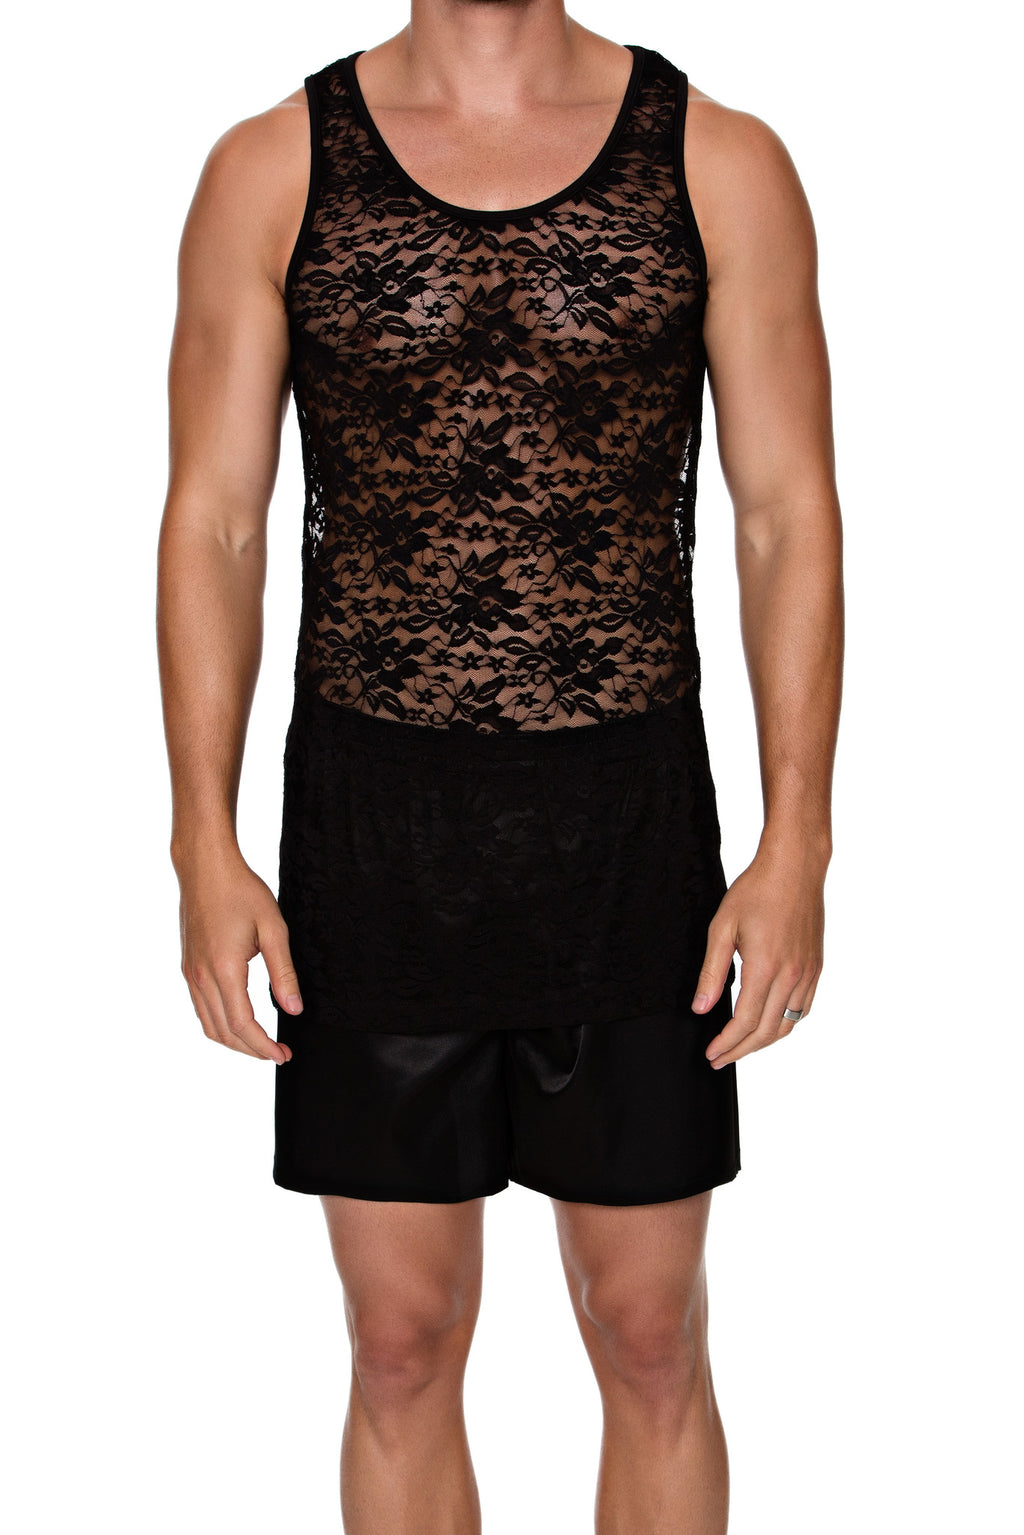 TANK in LACE SPANDEX - MENAGERIÉ Intimates